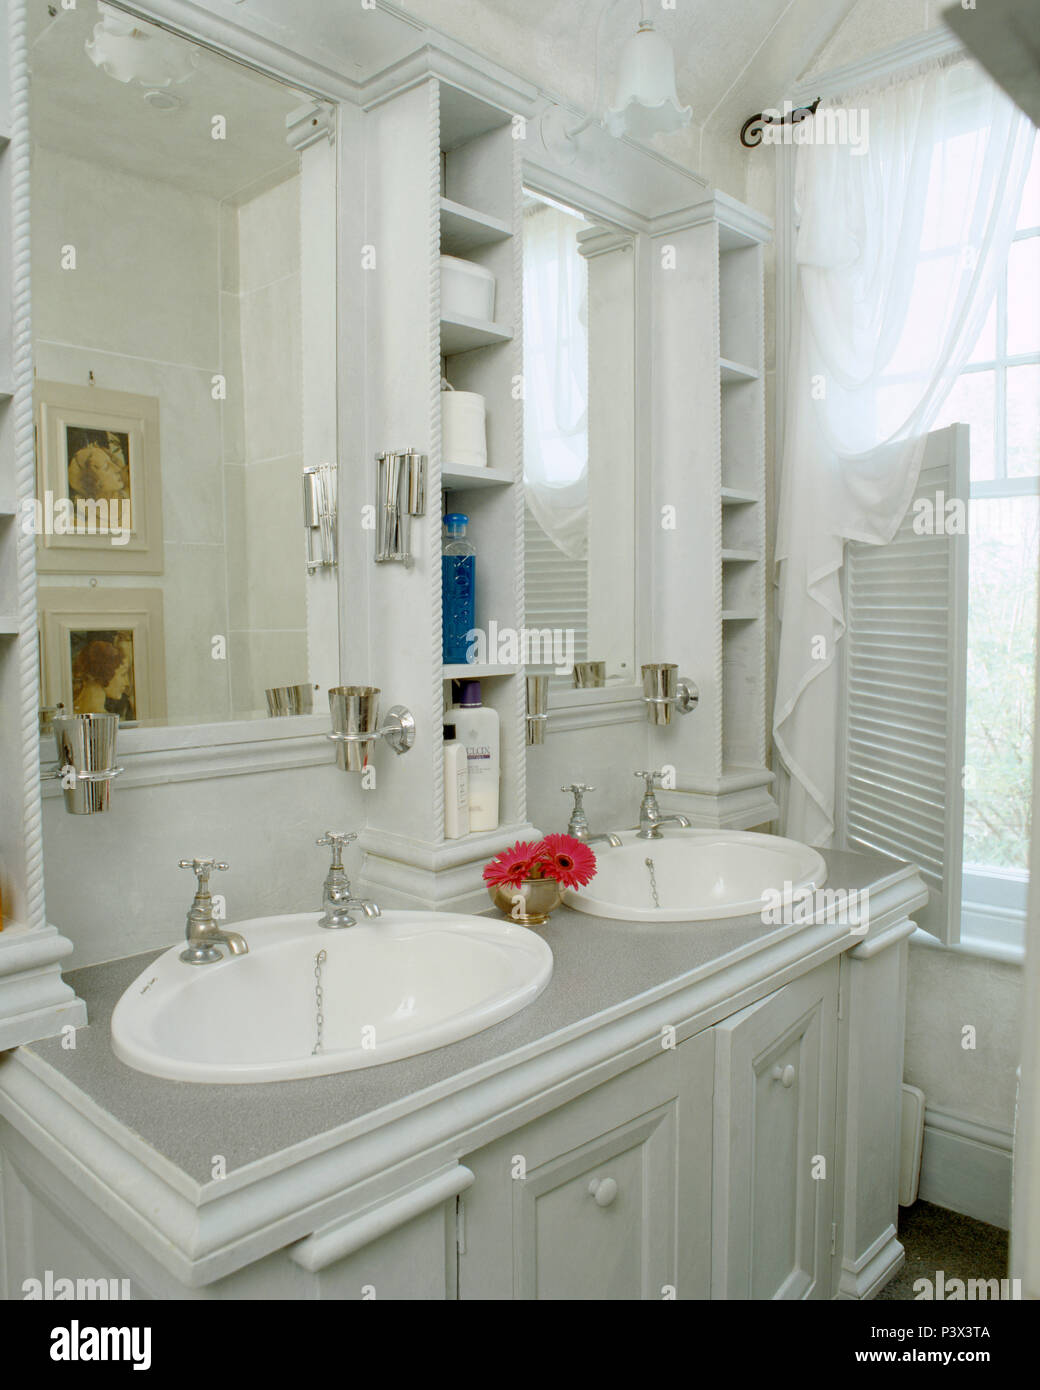 Storage Shelves And Mirrors Above Vanity Unit With Double White Oval Basins In Traditional Grey Bathroom Stock Photo Alamy